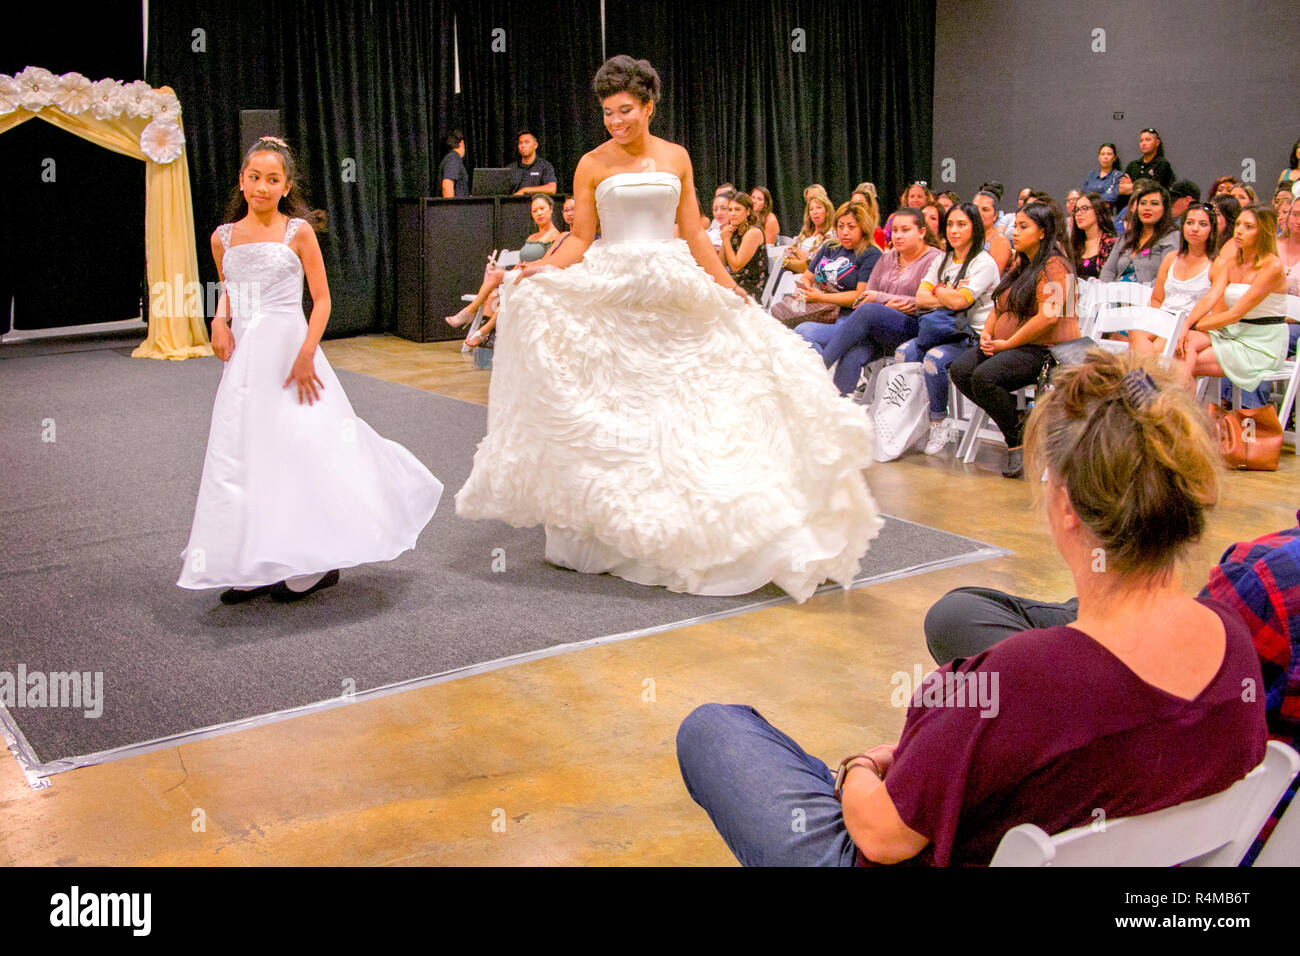 fbfd0b72a A Hispanic mother and daughter model bridal and bride's maid dresses at a  bridal fair fashion